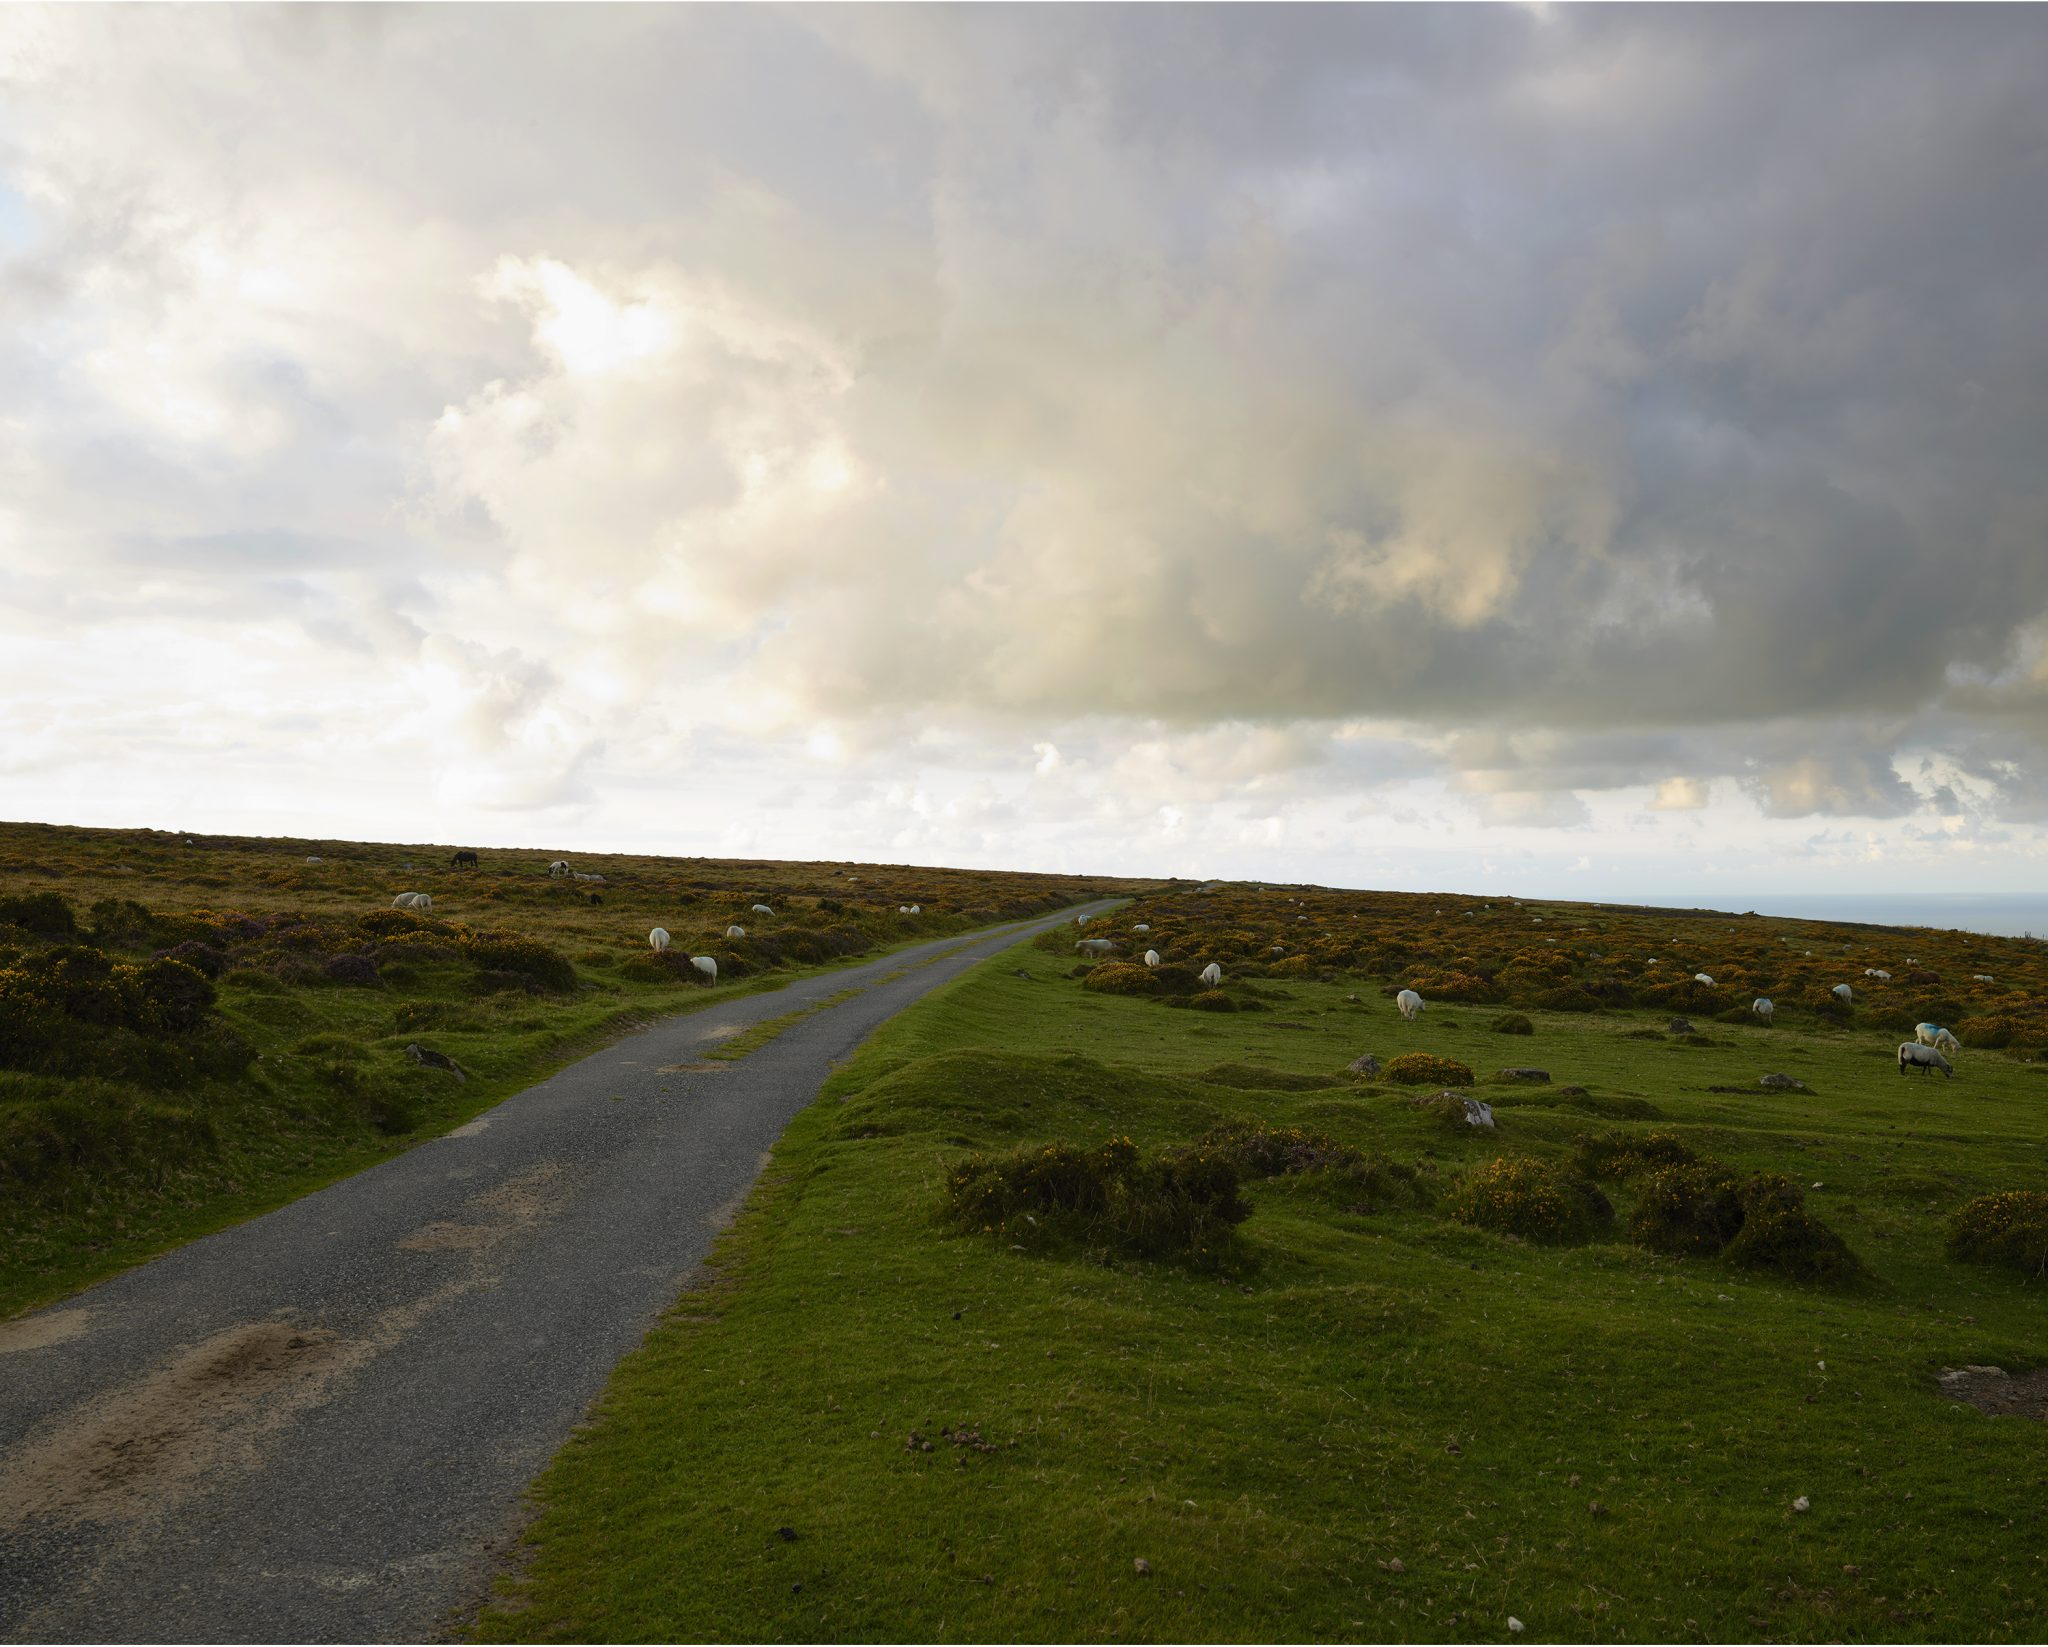 Photograph of sheep grazing either side of a narrow country road